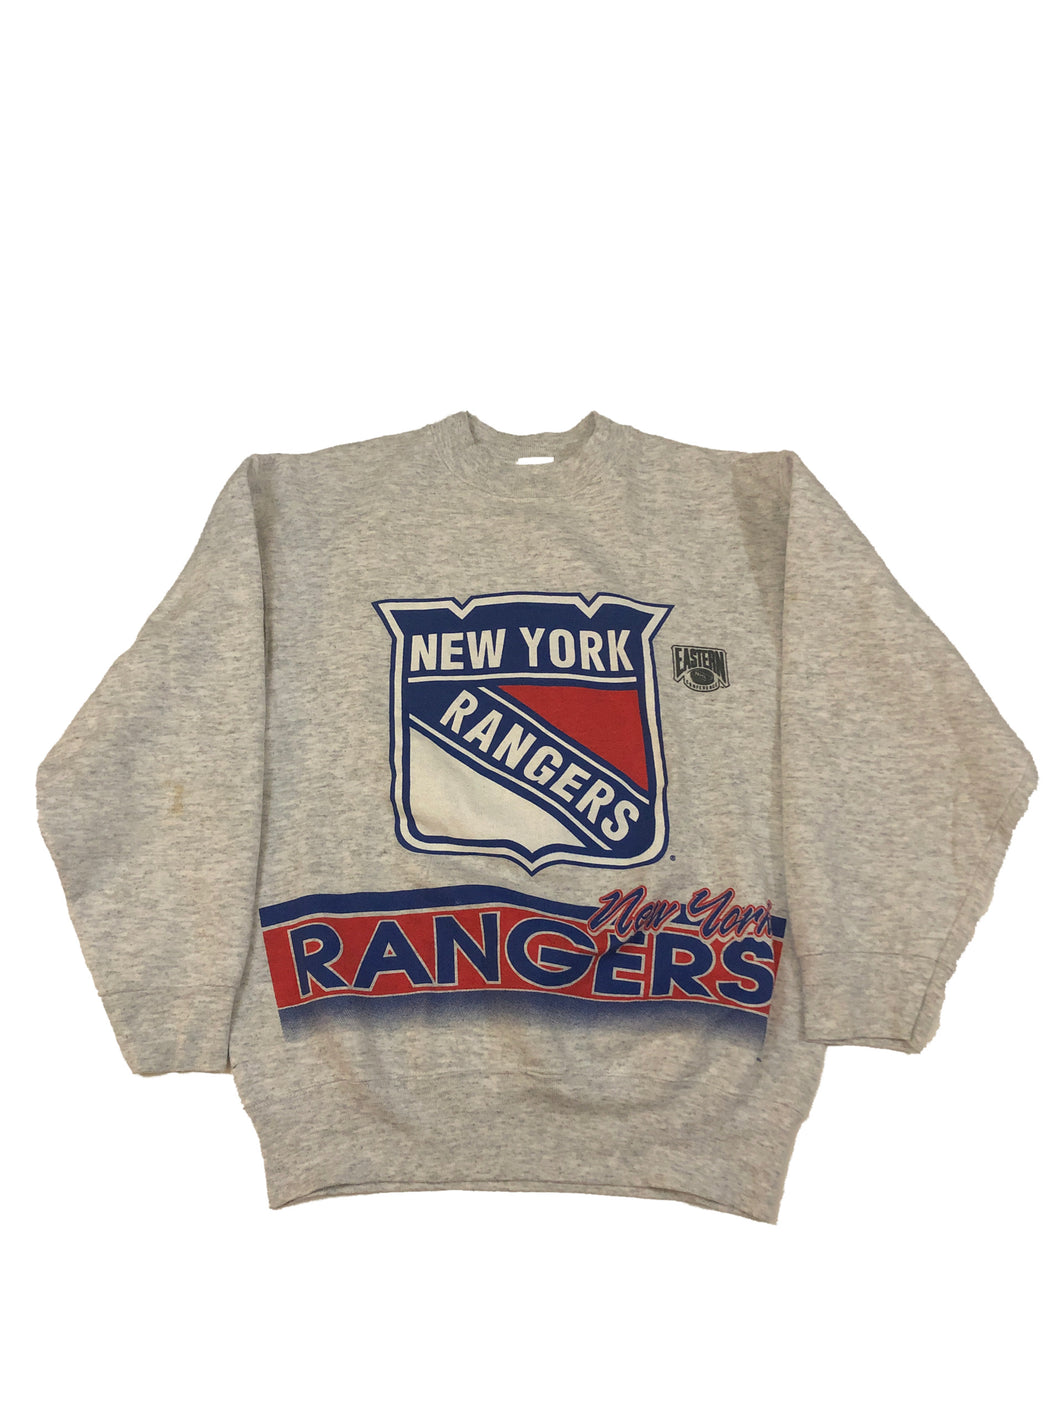 New York Rangers Crewneck